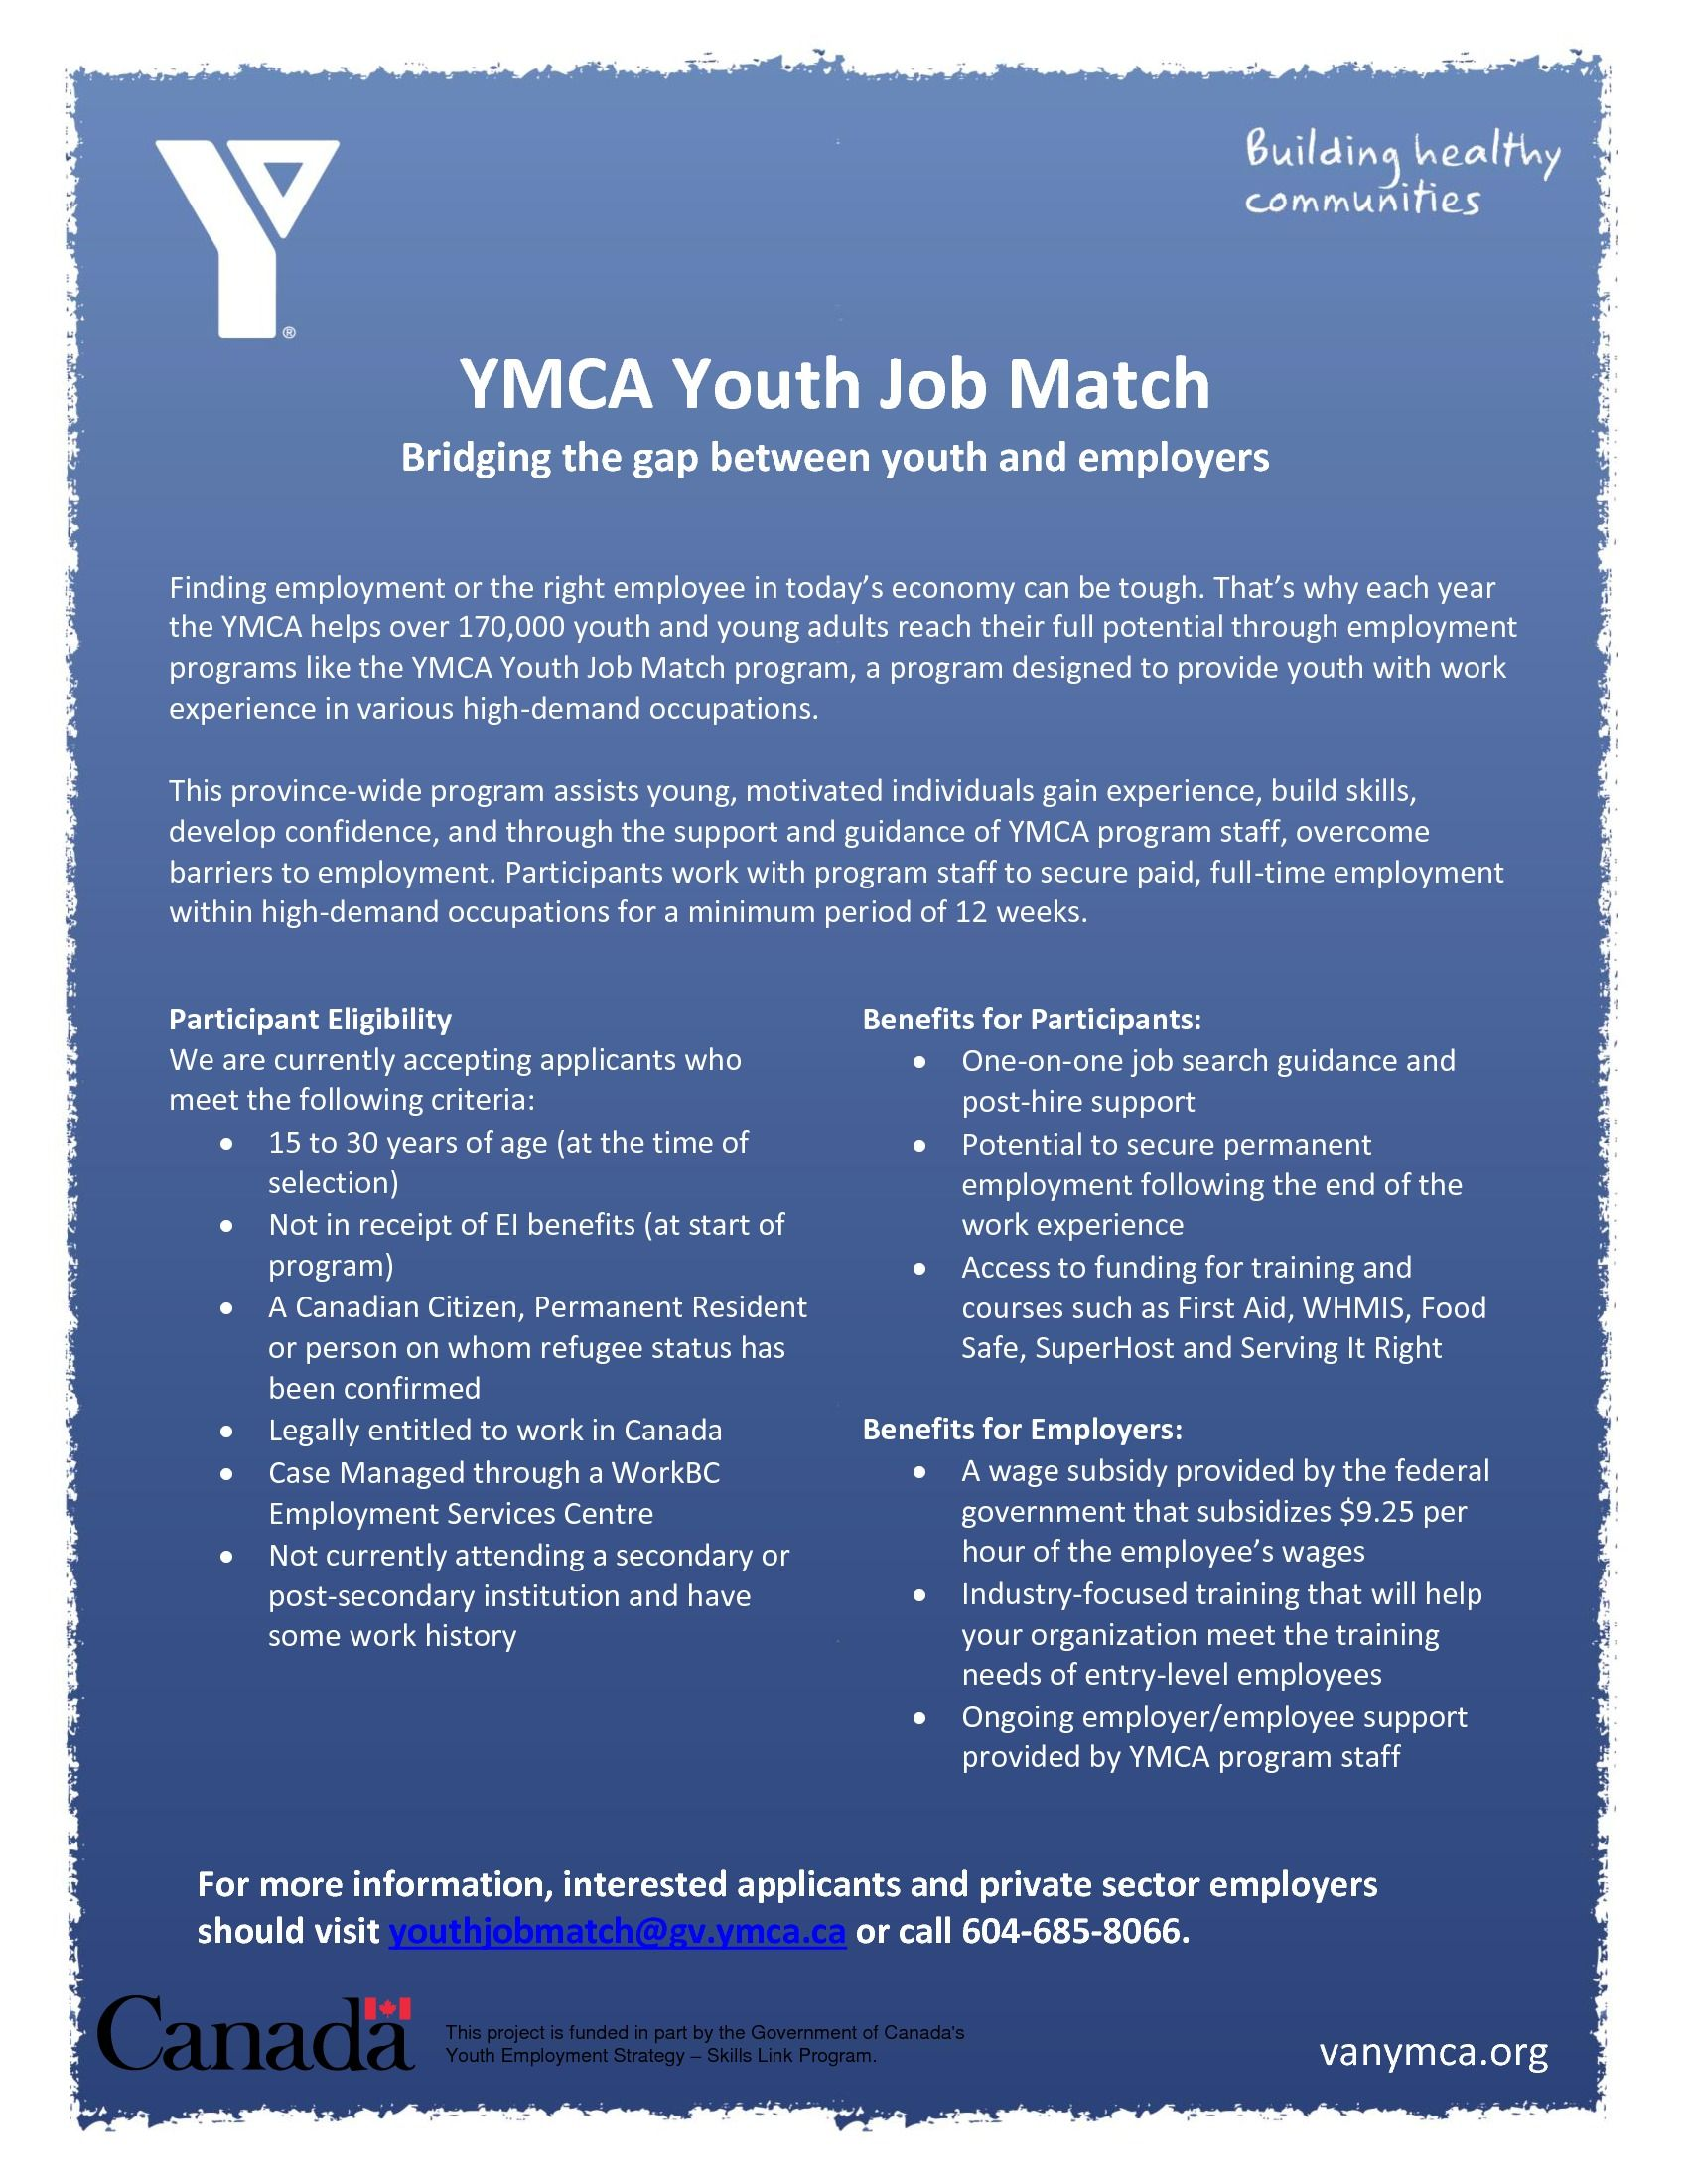 Know Any Youth 15 To 30 Struggling To Find Stable Employment